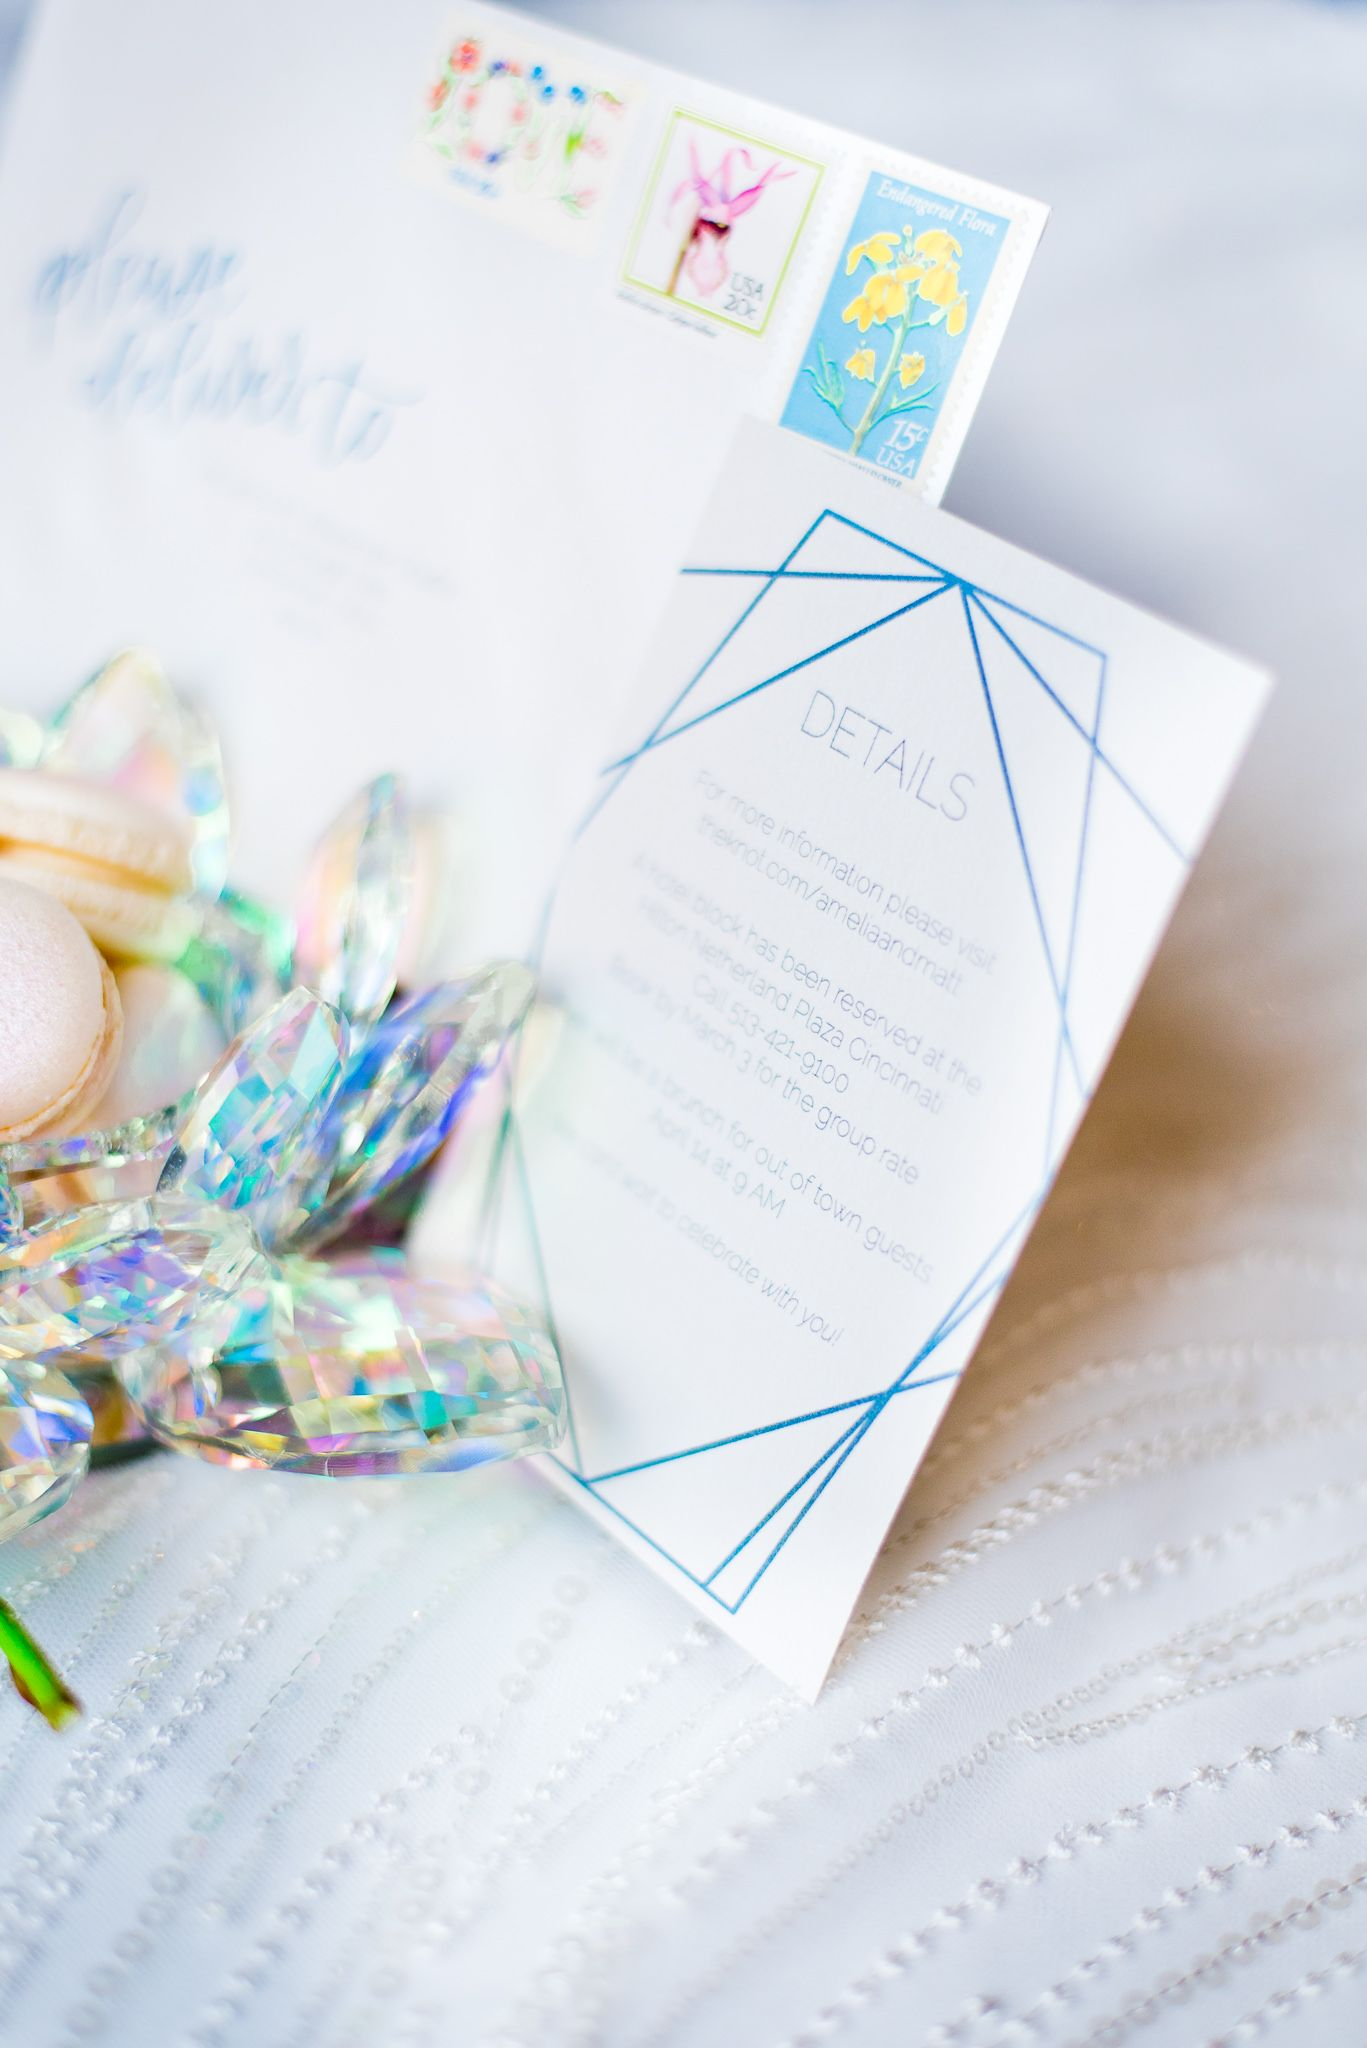 close up of blue and white wedding invitation next to a rainbow crystal bowl for a wedding at The Center Cincinnati